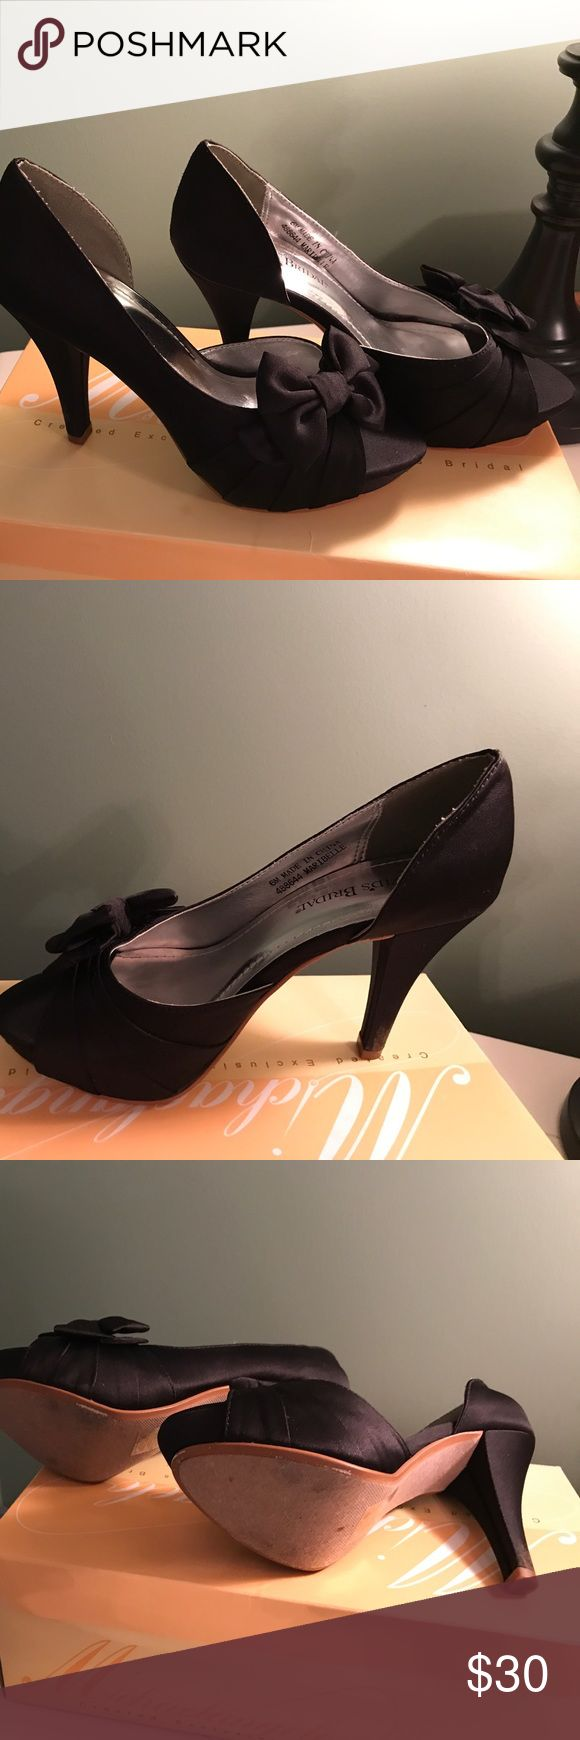 "Davids bridal formal shoes Just a little wear and only worn once.  Approx 3 1/2"" heel David's Bridal Shoes Heels"